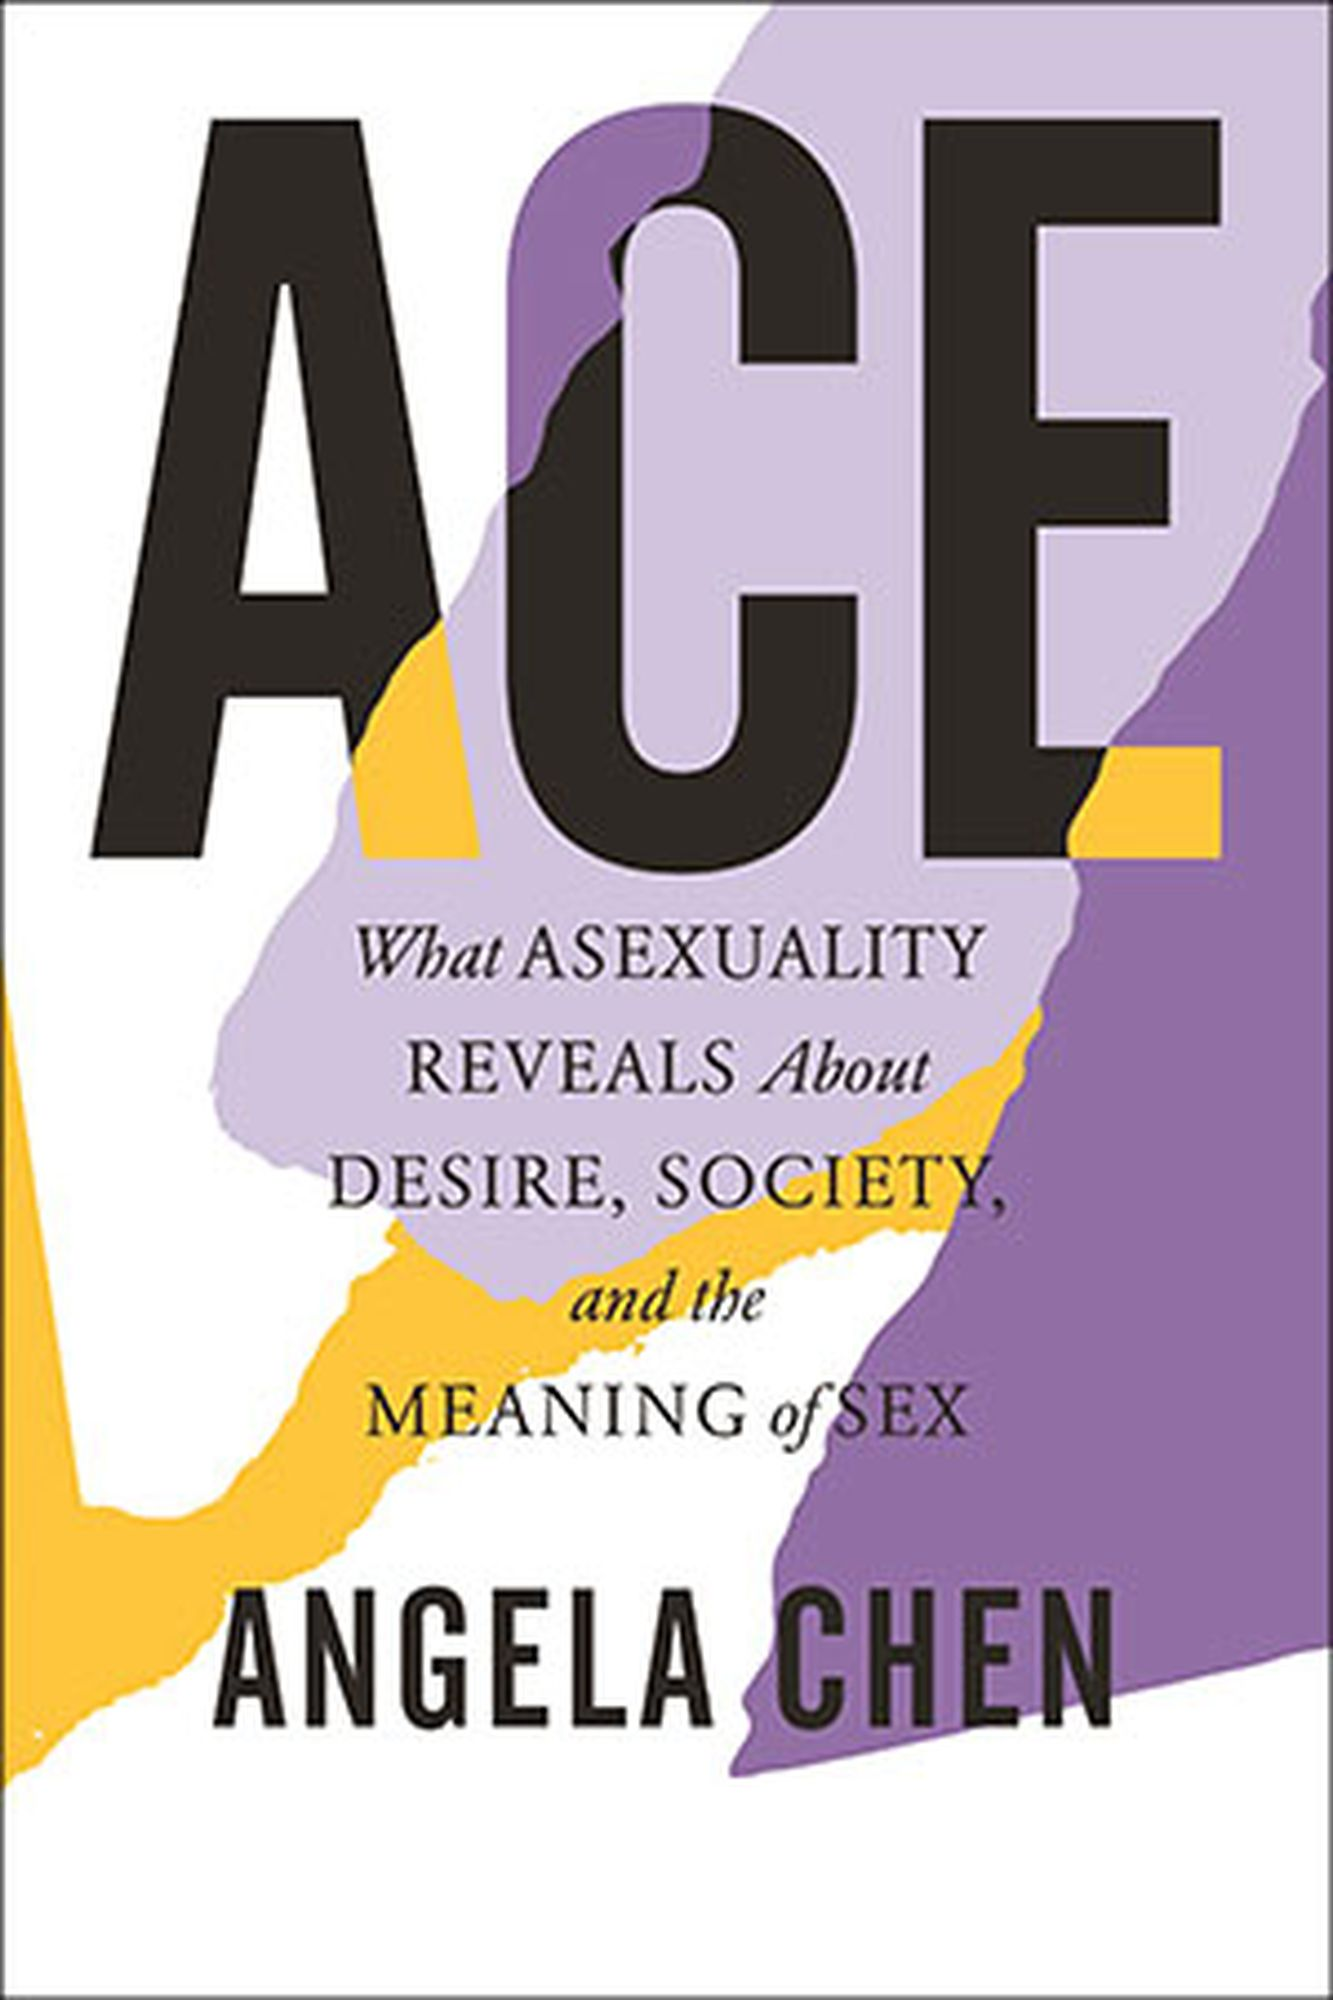 An Education about Asexuality